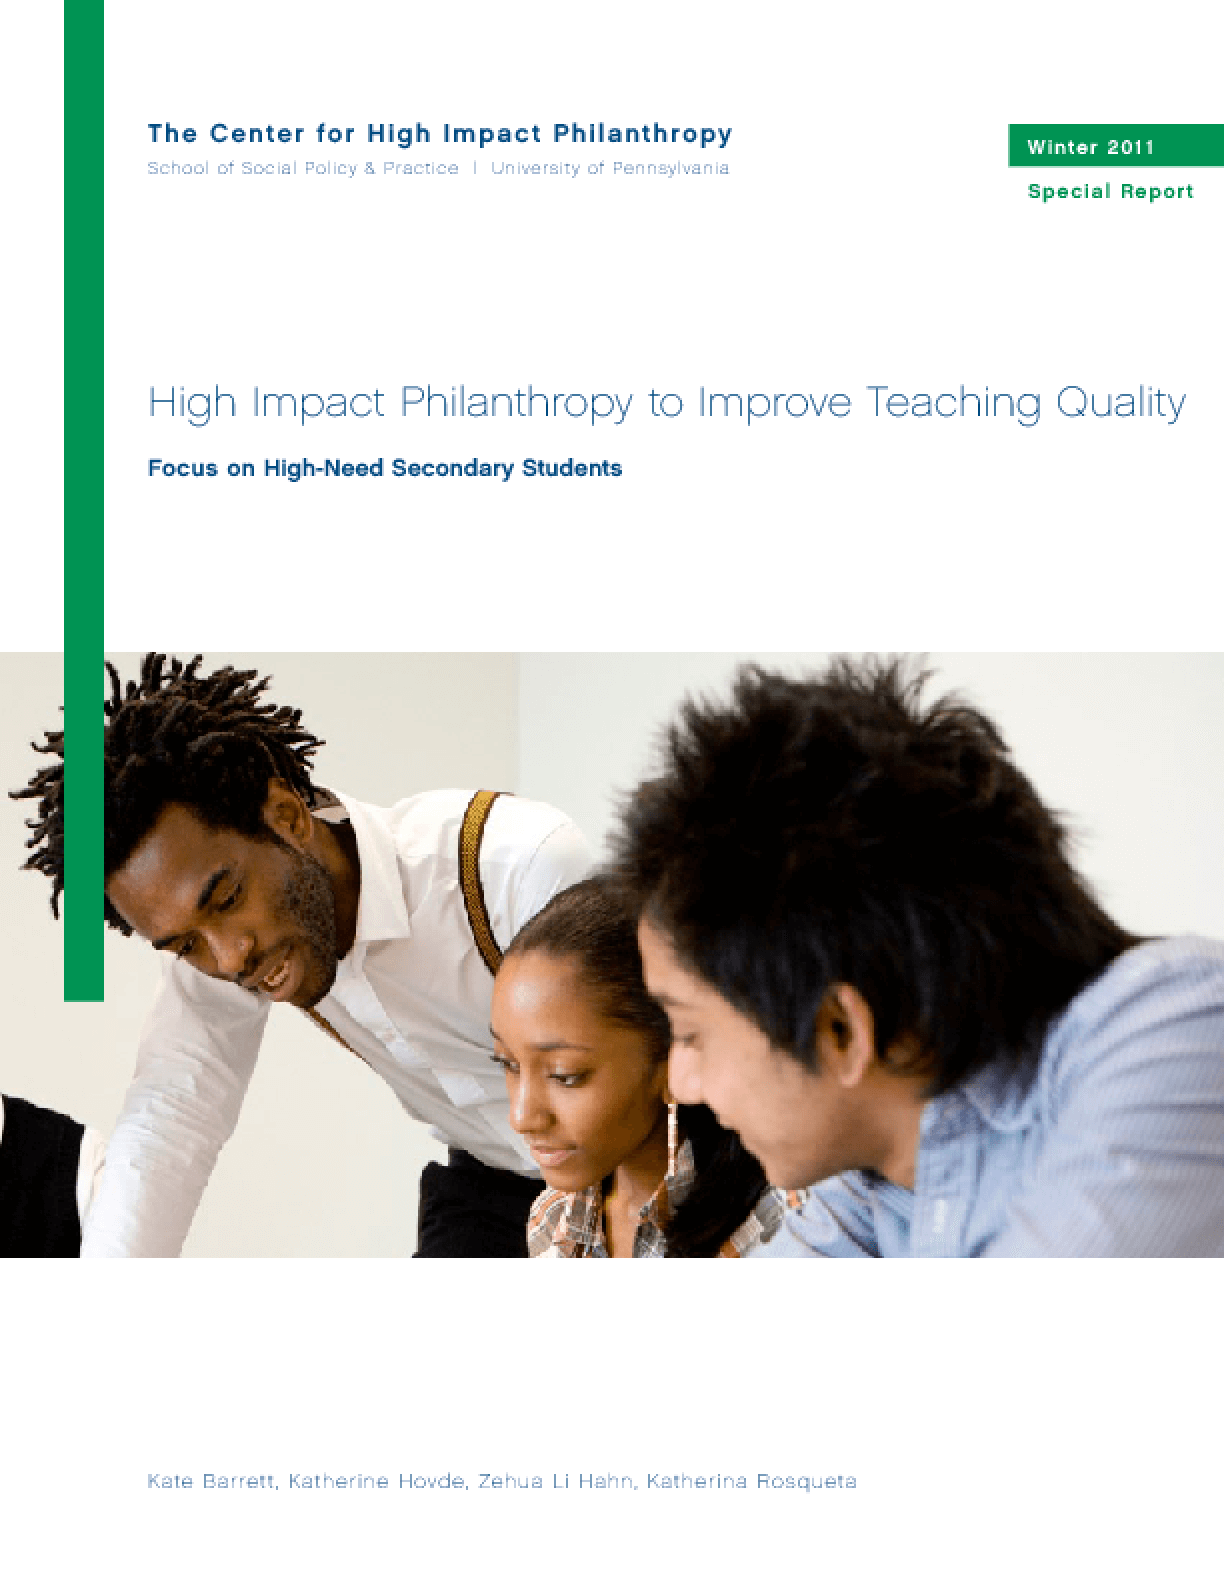 Impact Philanthropy to Improve Teaching Quality: Focus on High-Need Secondary Students